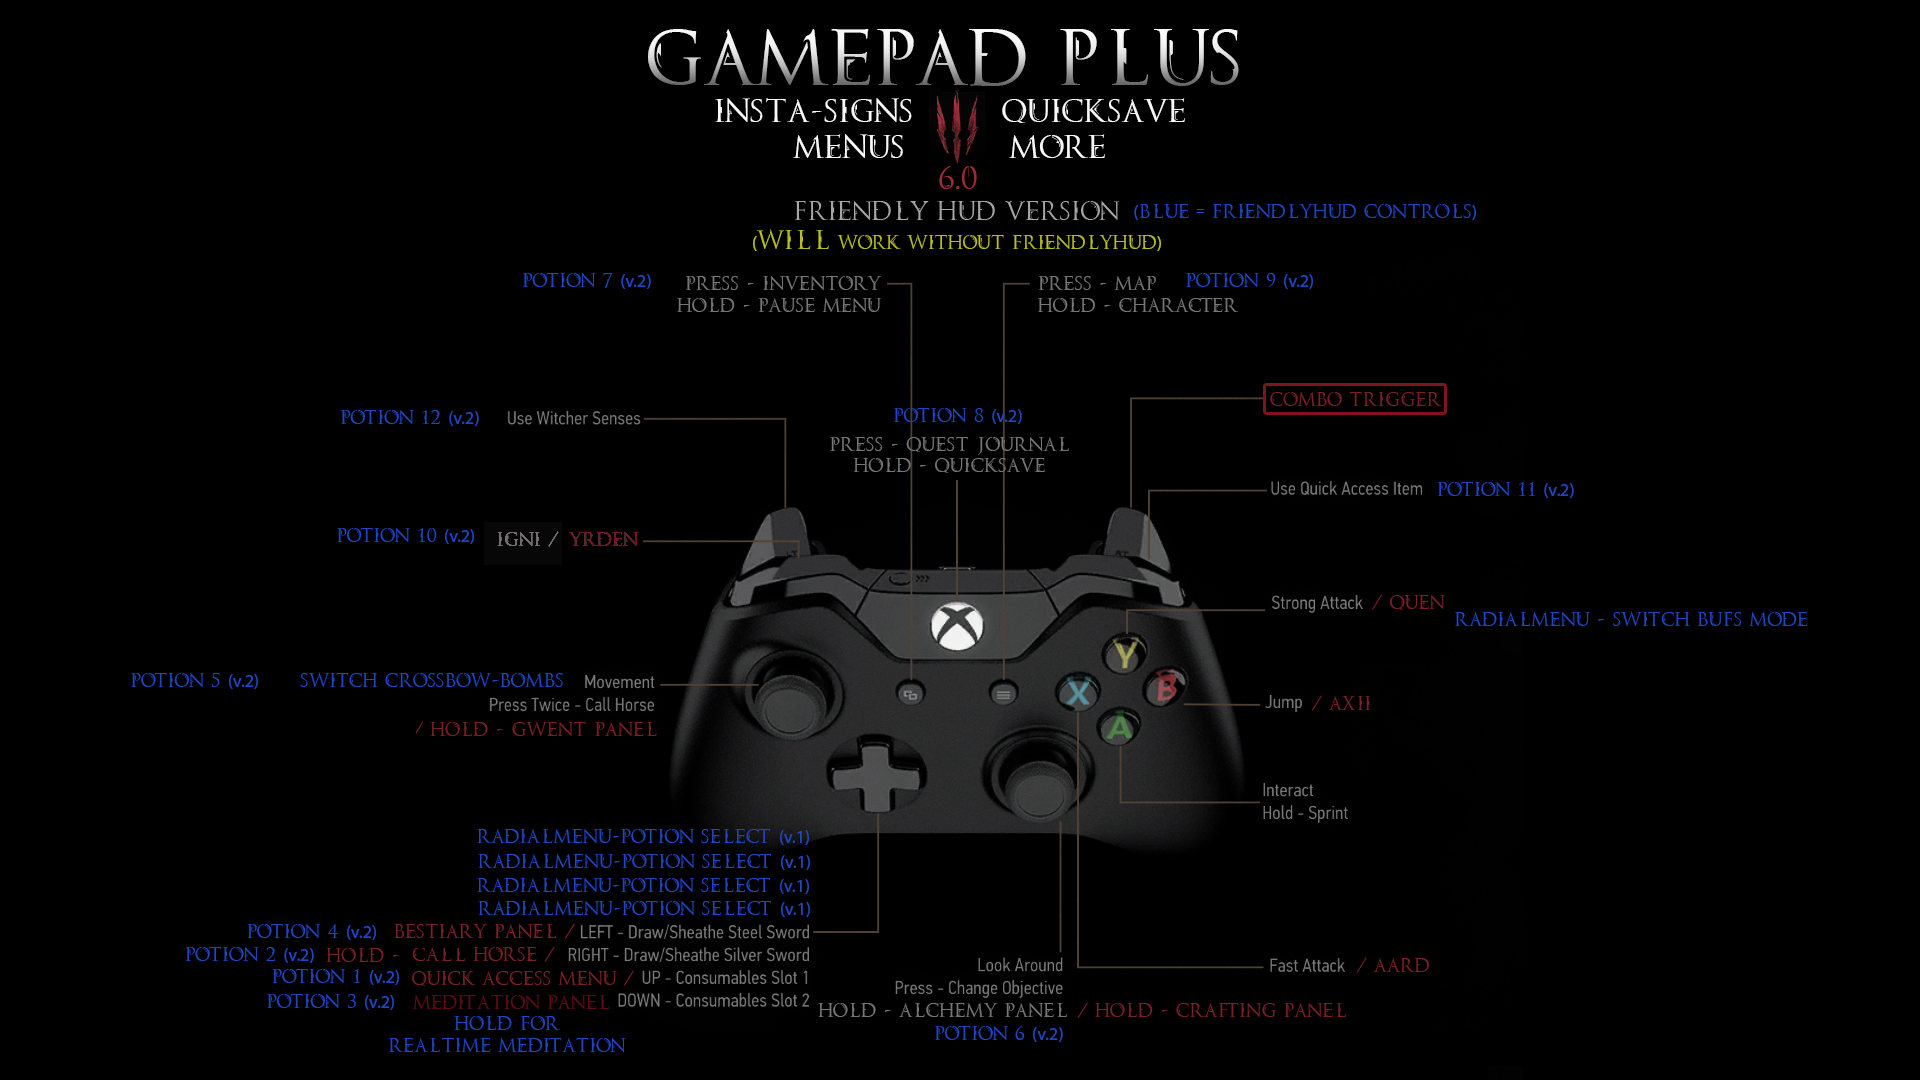 GAMEPAD PLUS - Insta-Signs Quicksave Menus and More at The Witcher 3